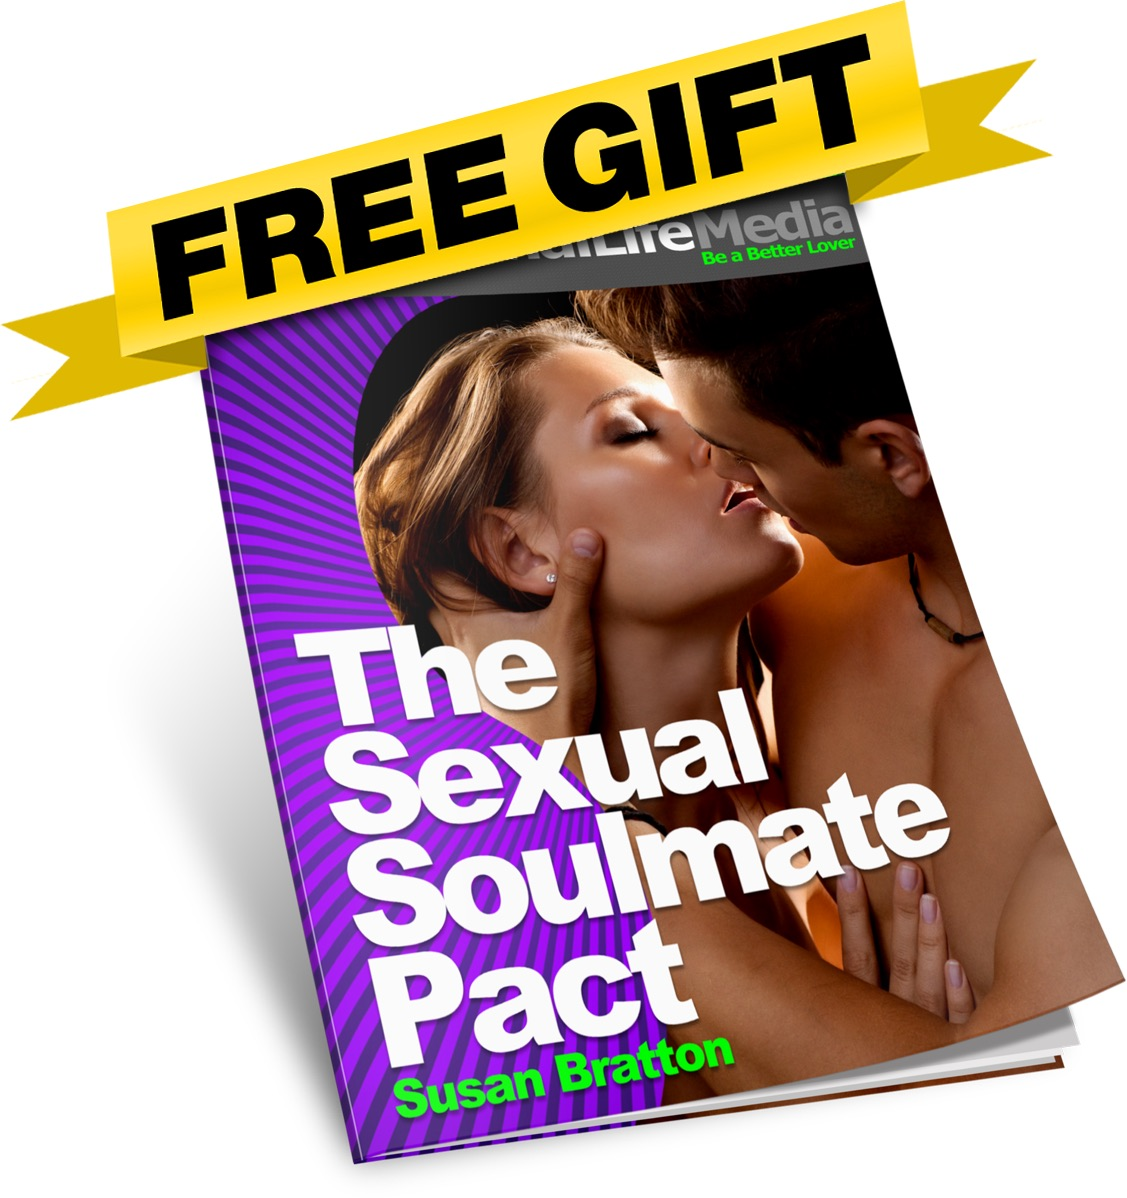 Soulmate Pact Free Gift